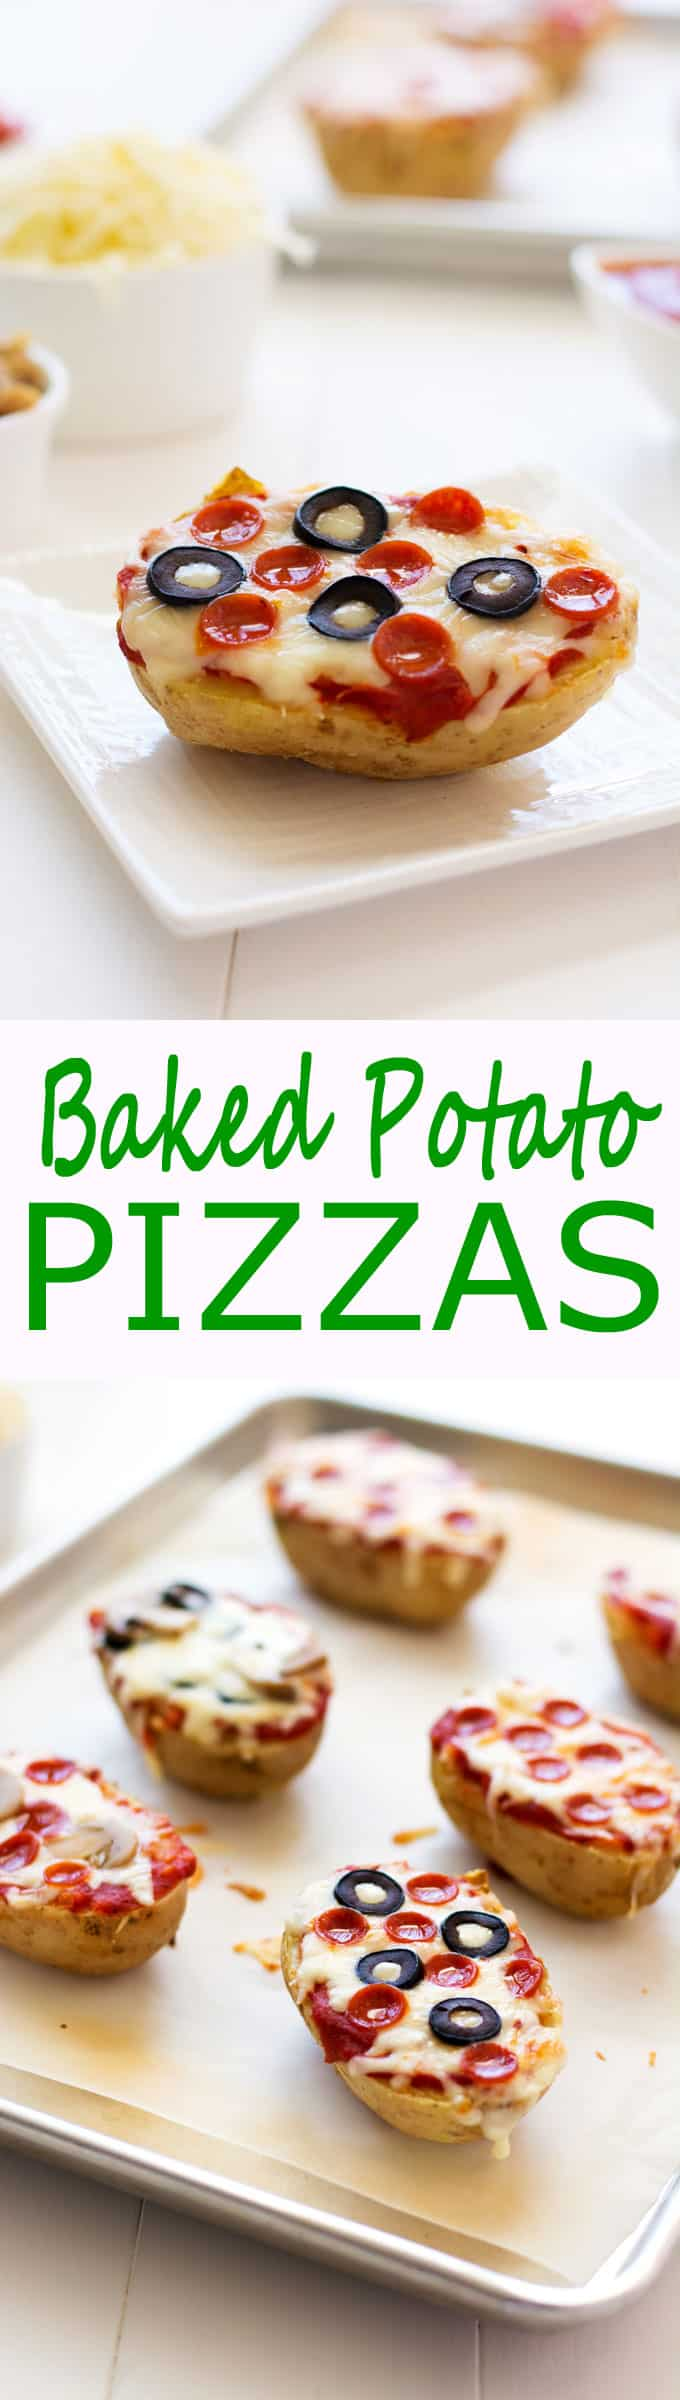 Photos of baked potato pizzas on a baking sheet and on a plate.